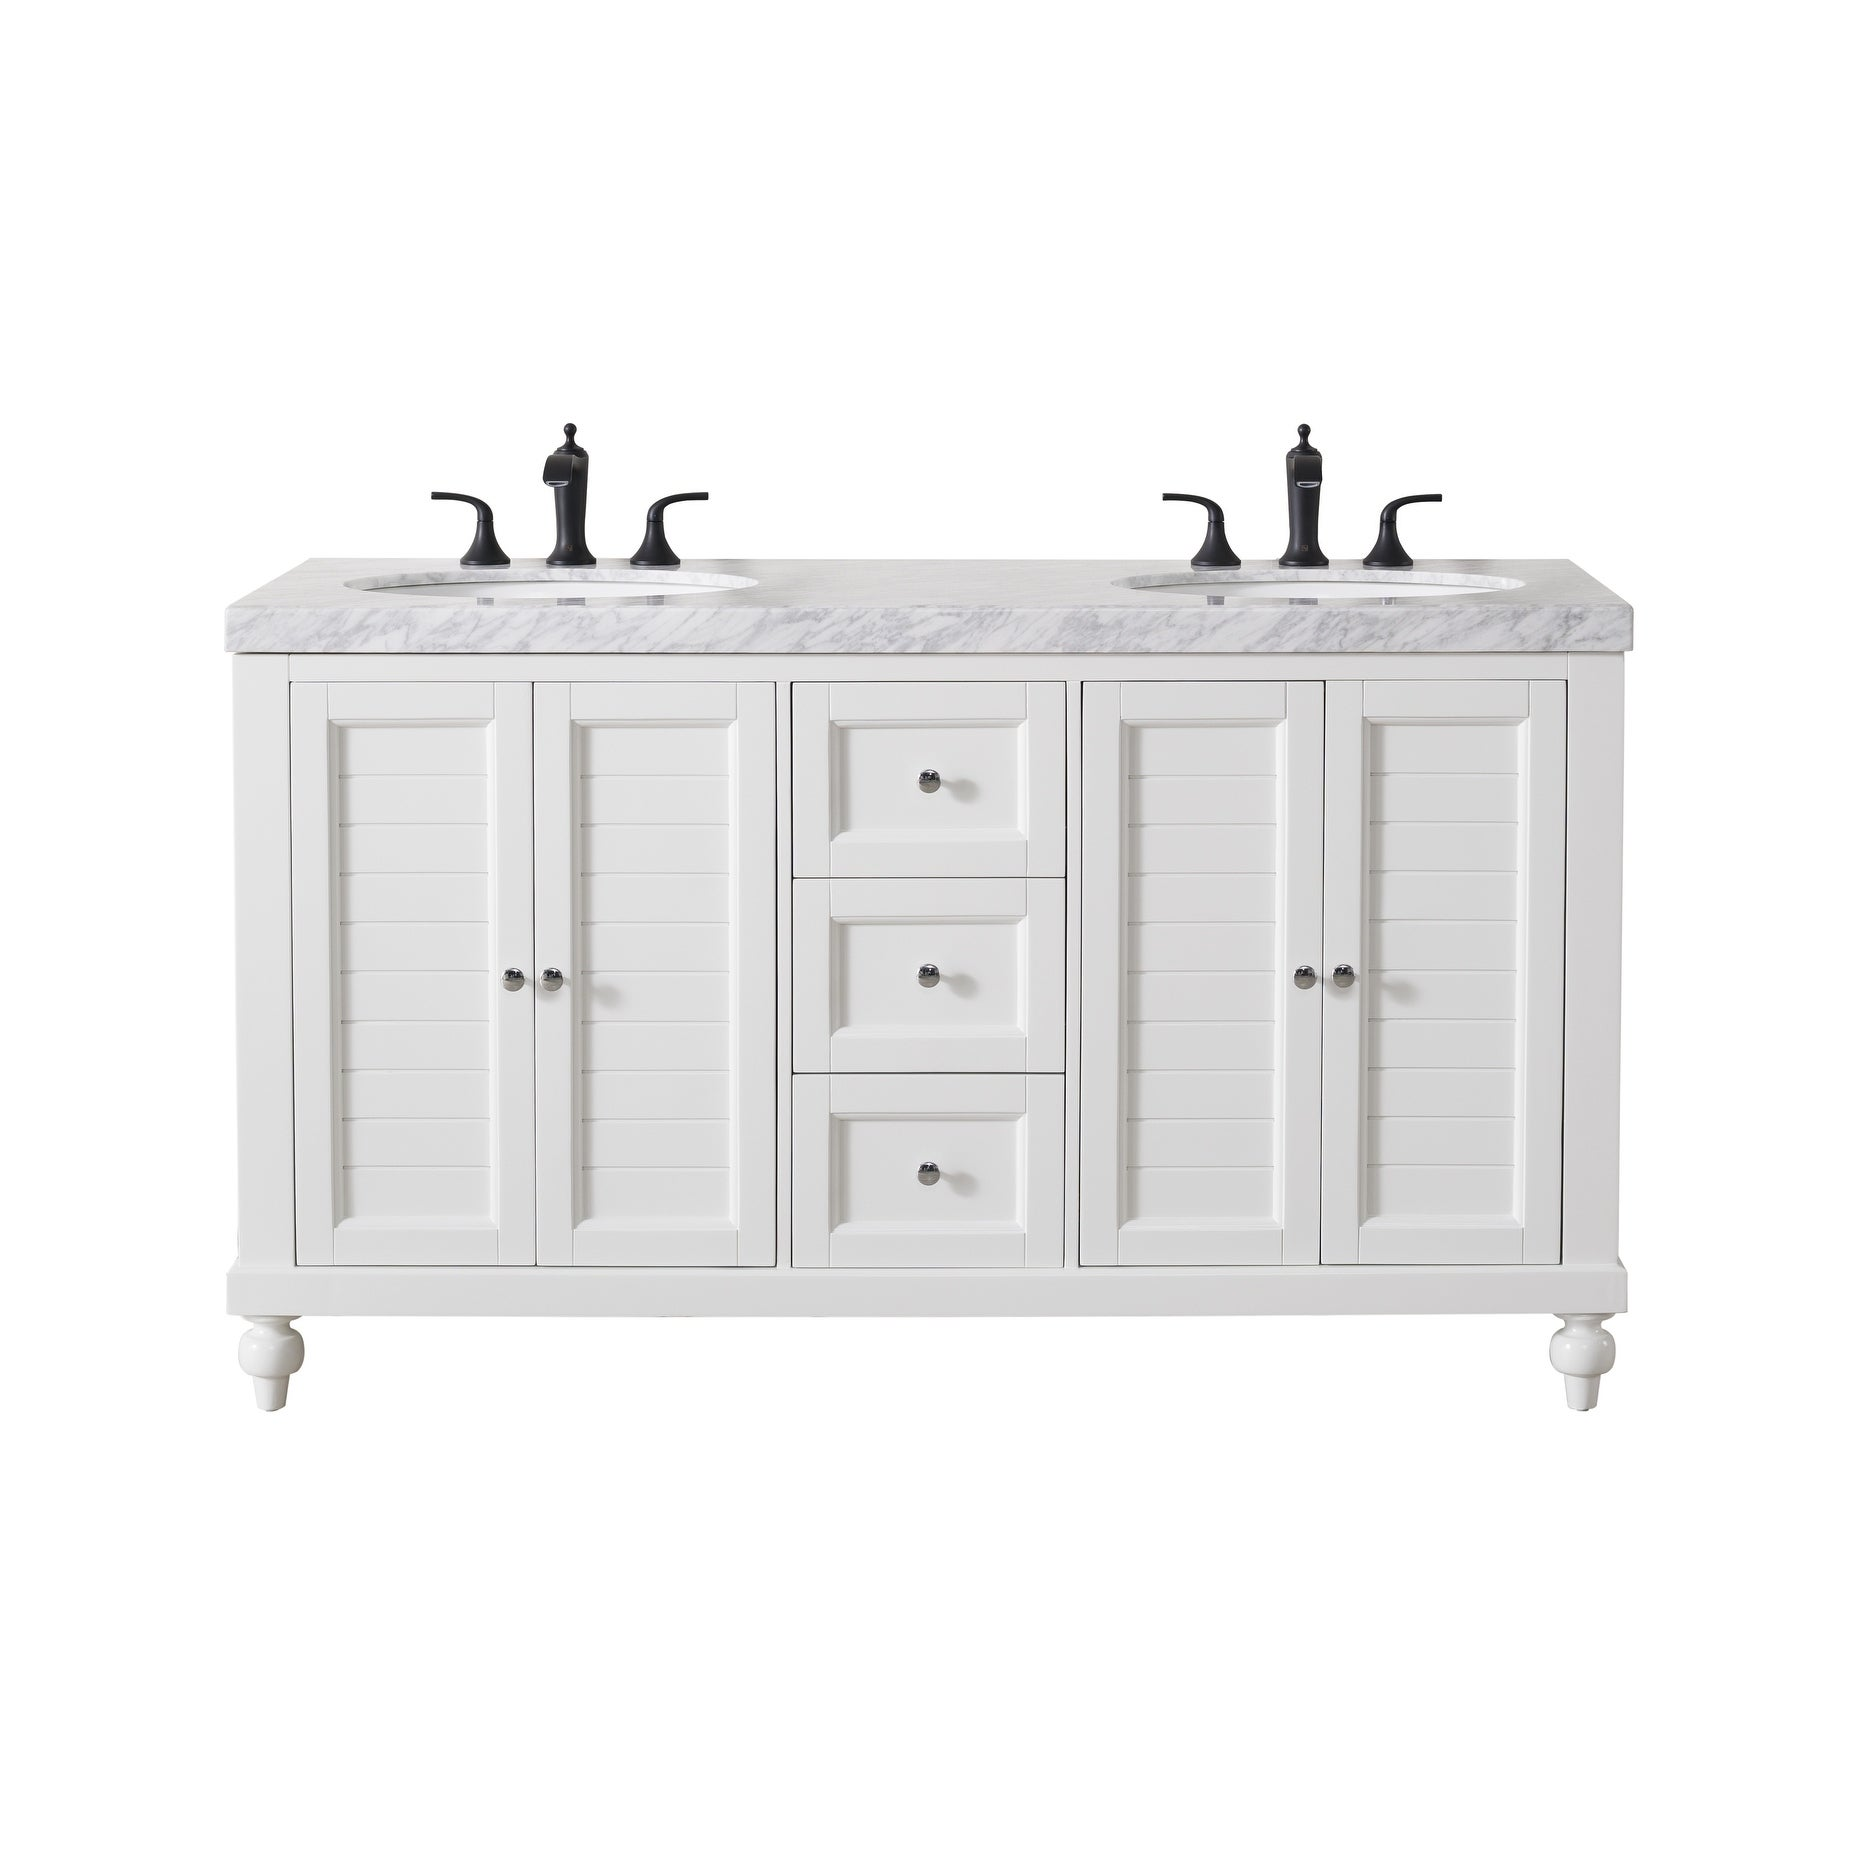 Stufurhome Kent 12 Inch White Double Sink Bathroom Vanity with Drains and  Faucets in Matte Black